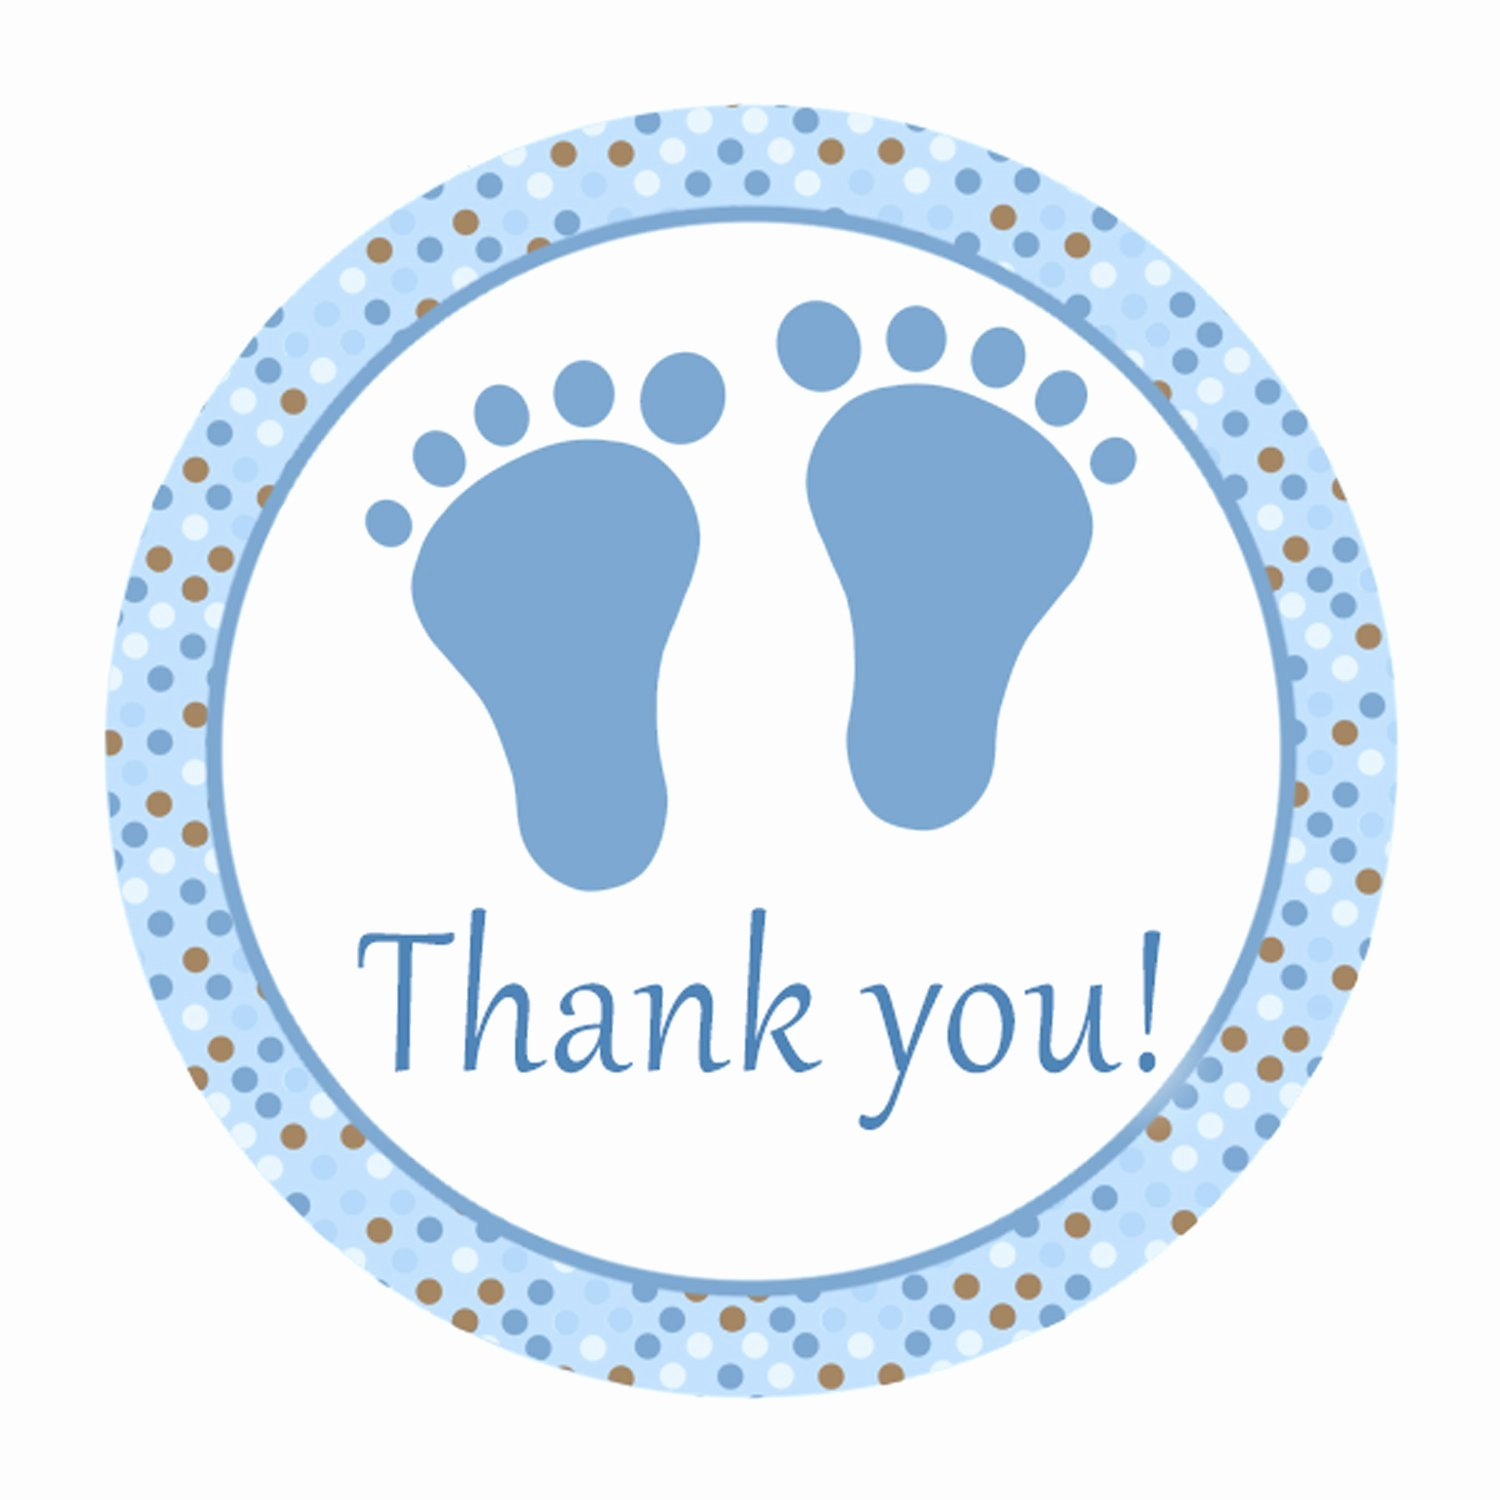 Printable Cute Blue Brown Polka Dots Baby Feet Thank You